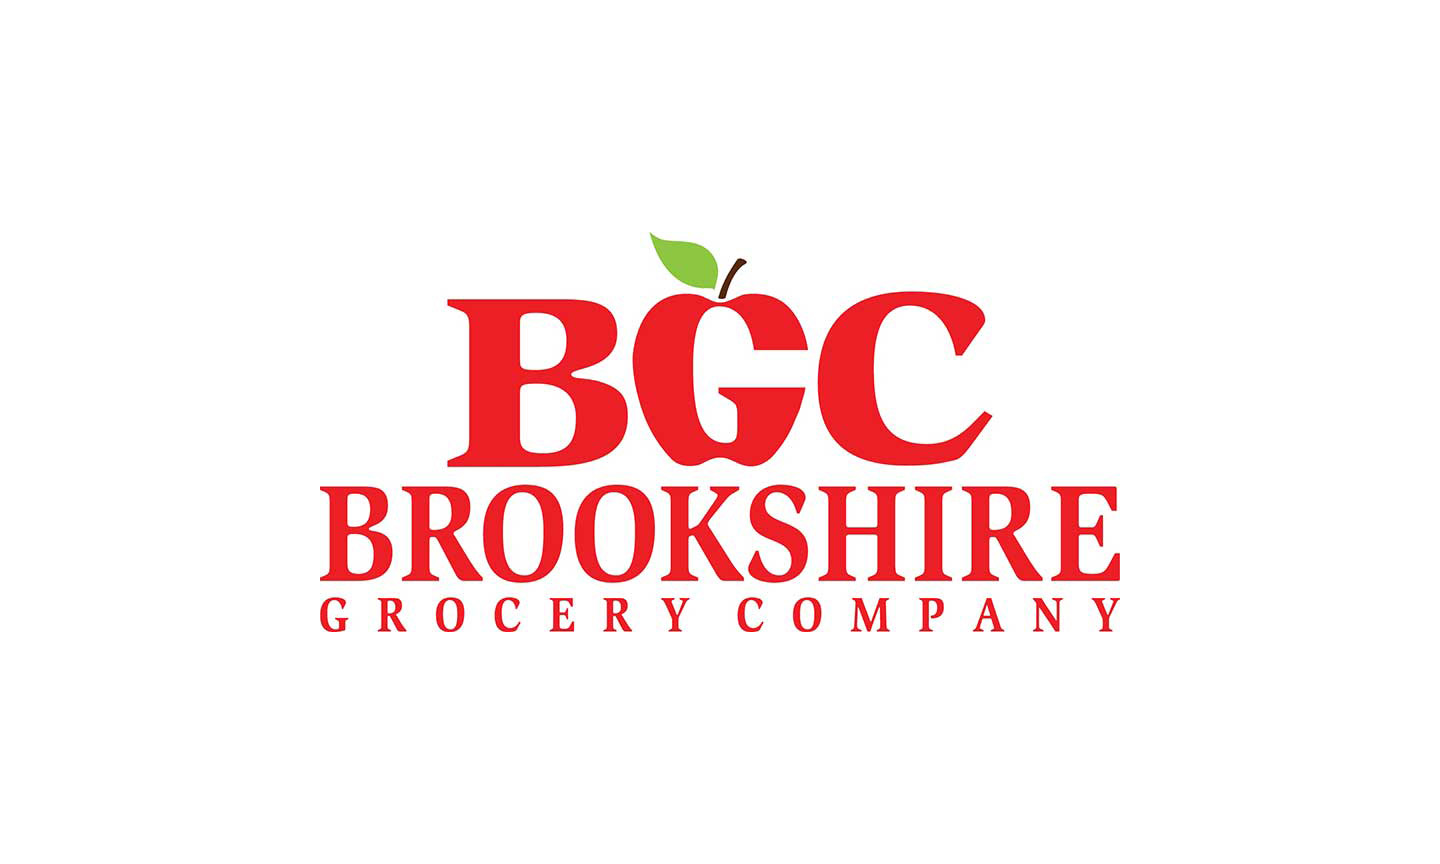 Arkansas, Cranford's + Brookshire Grocery Co. logo